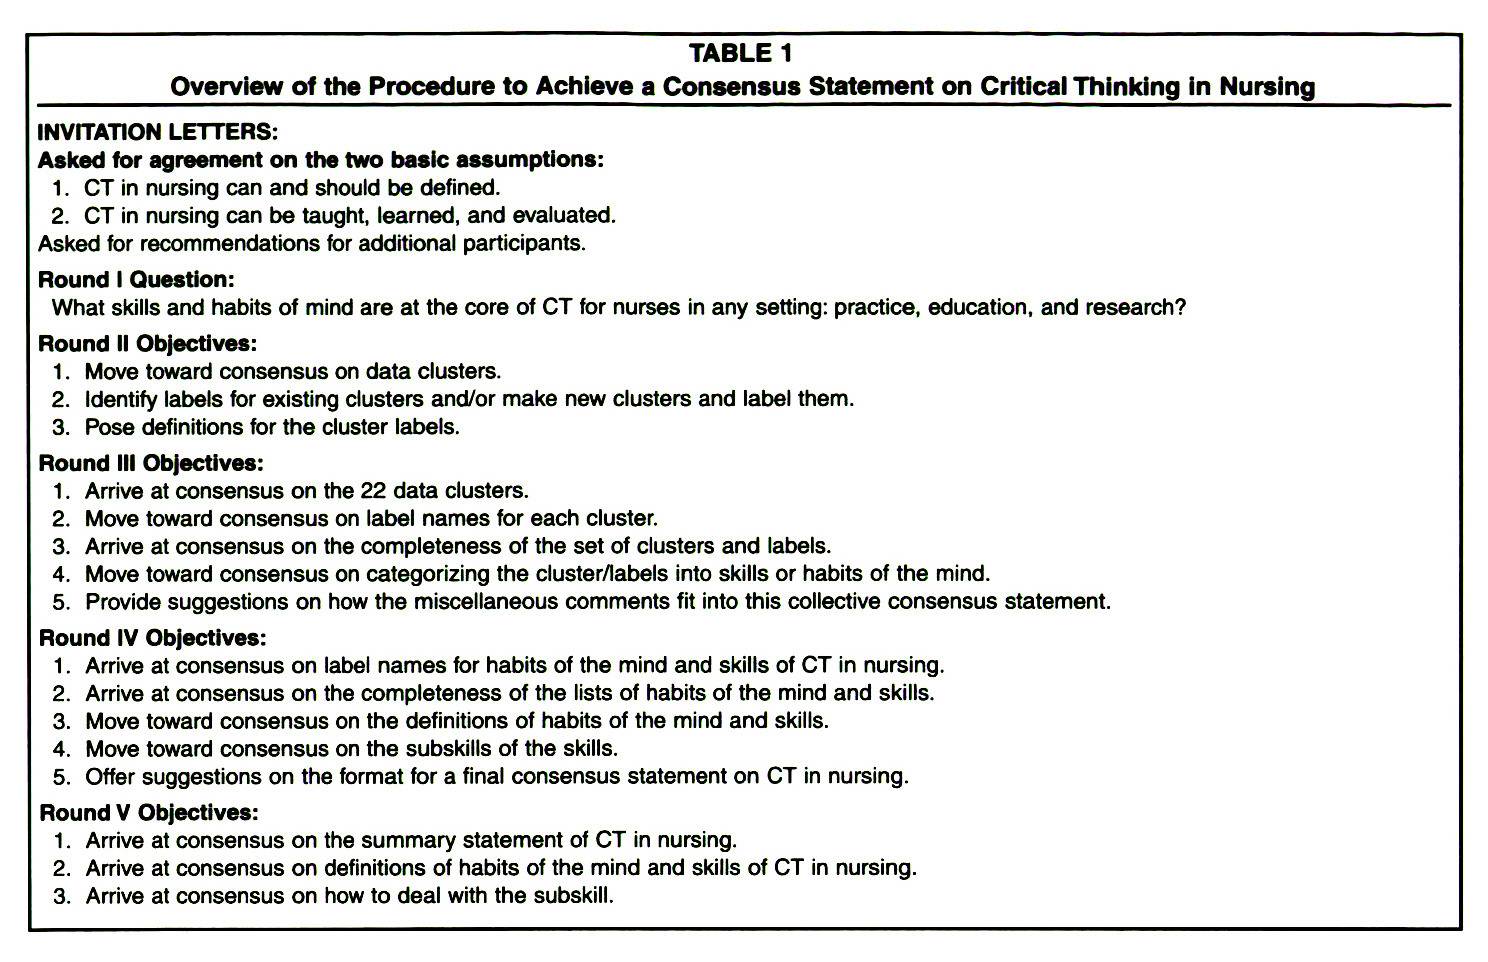 Critical thinking skills in health care professional students a systematic  review SP ZOZ   ukowo